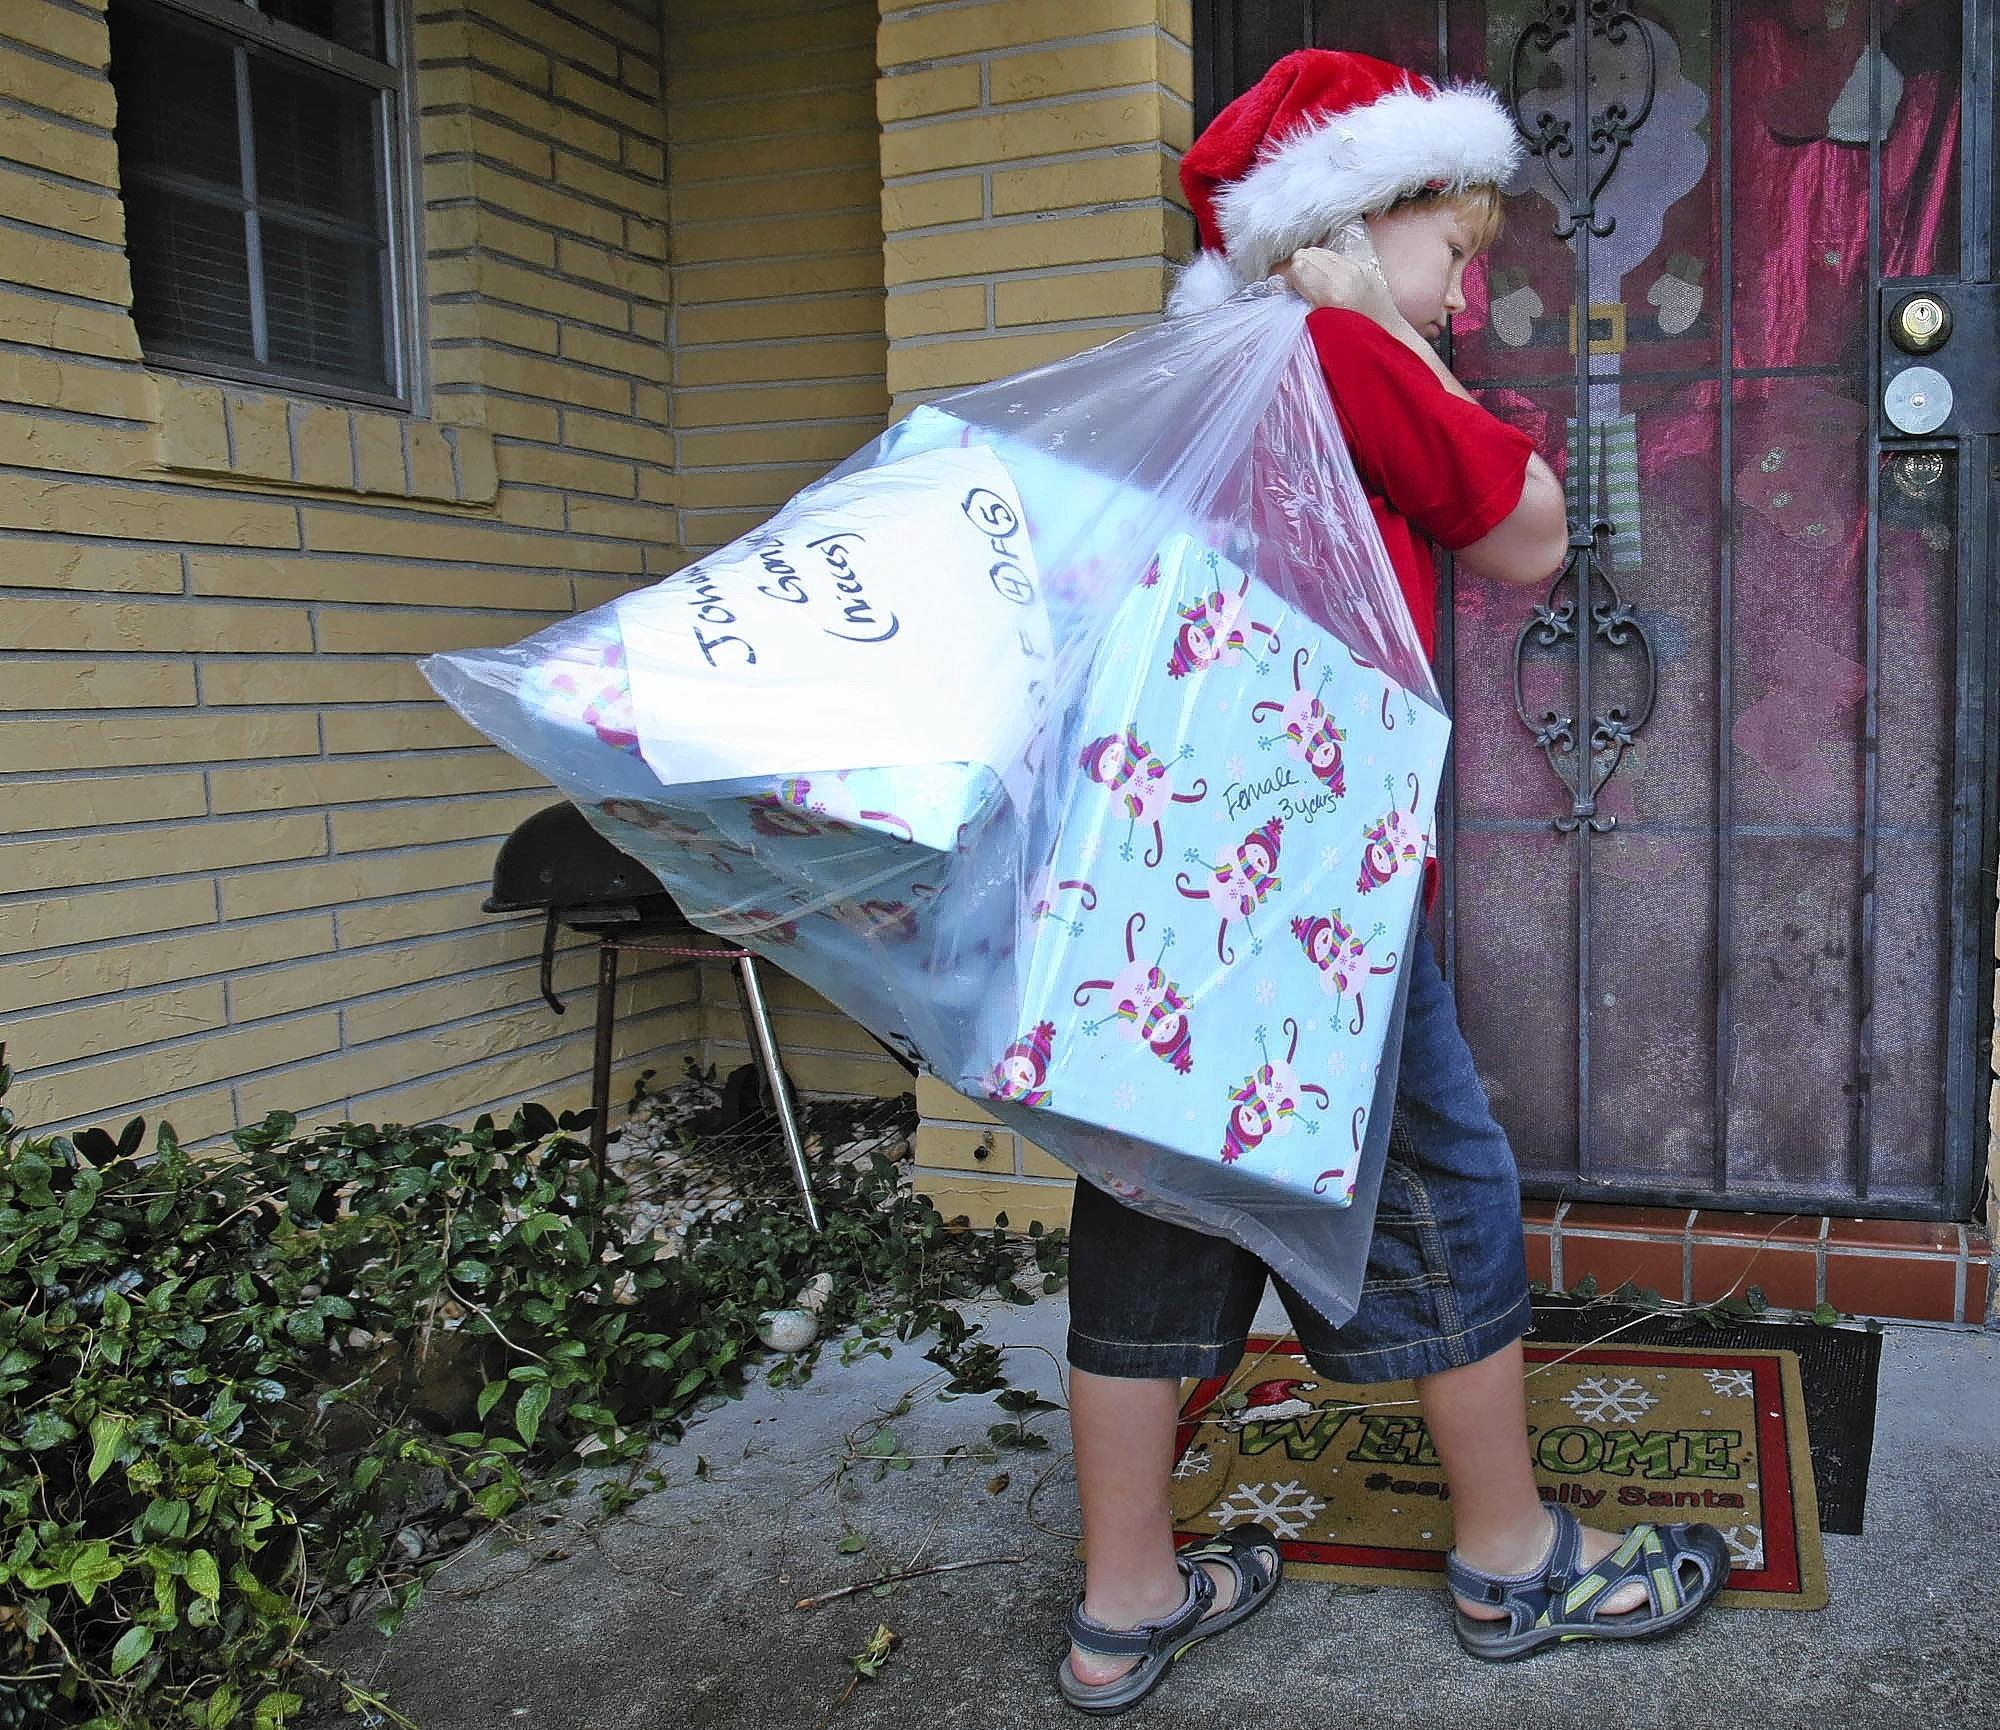 Gray Powell, 8, delivers a sack full of gifts Tuesday, December 24, 2013, to a family in Orlando. Gray and his father, Dudley Powell, worked as volunteers for One Heart for Women and Children, a local nonprofit.